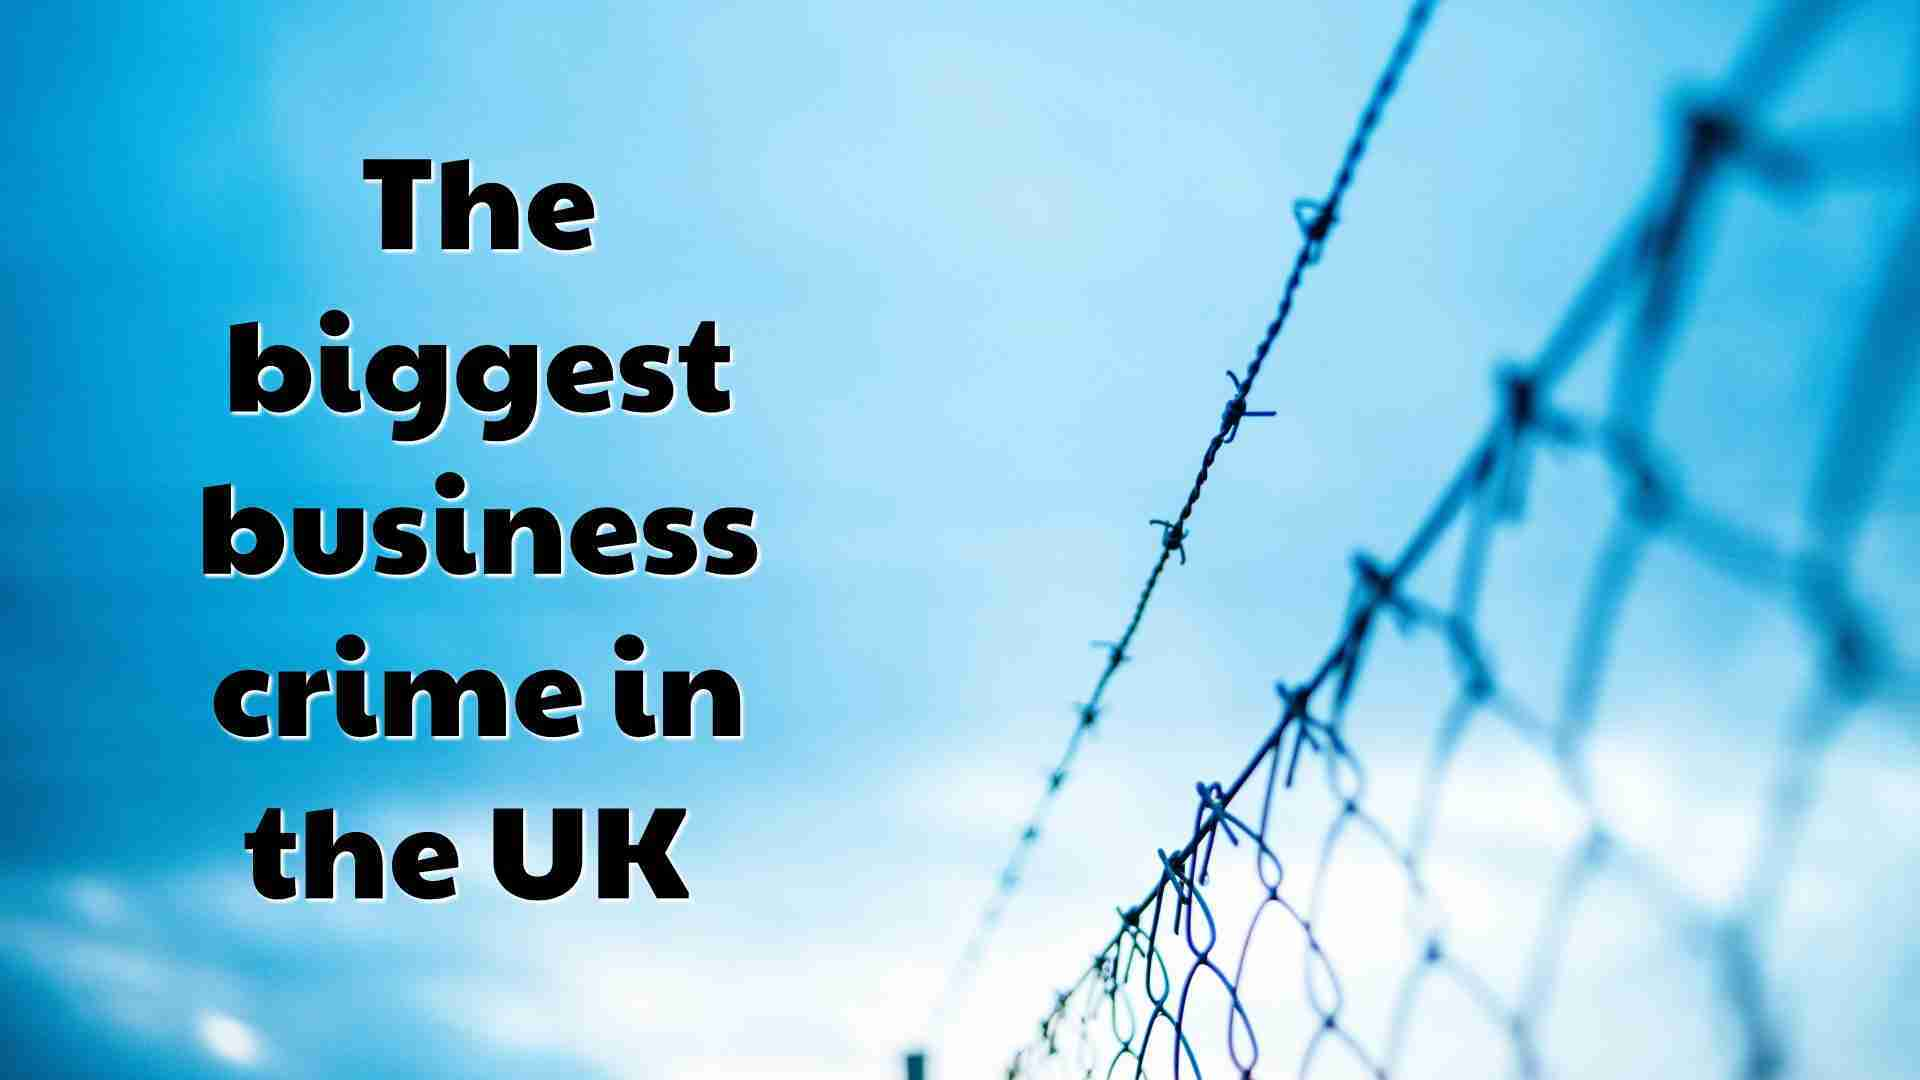 The biggest business crime in the UK